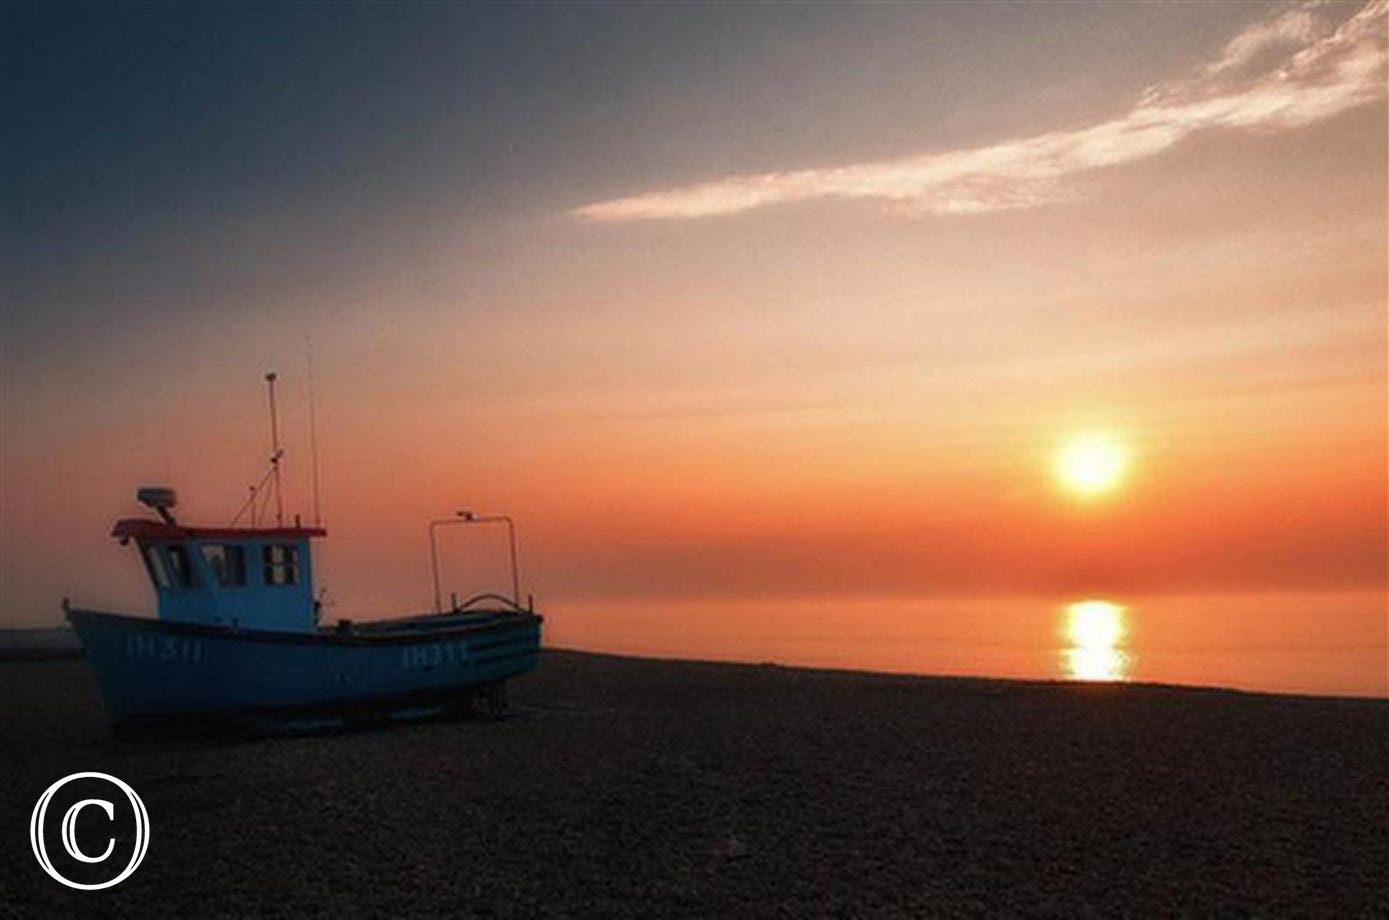 You may well be up early enough to witness an Aldeburgh Dawn.